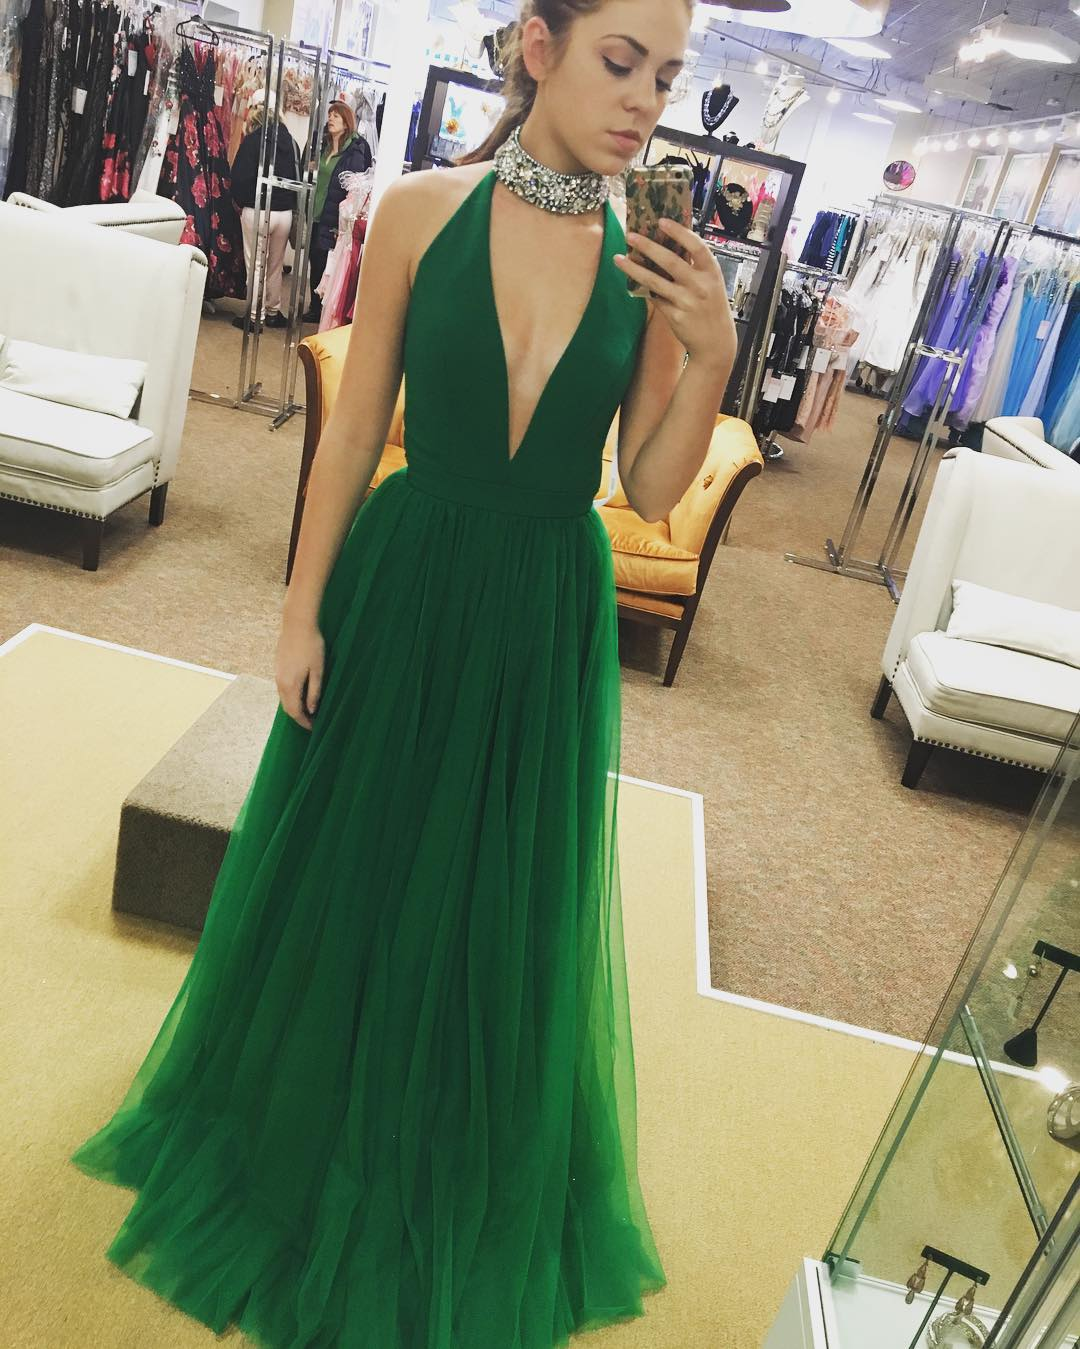 Beaded Prom Dress, High Neck Prom Dress, V Neck Prom Dress, Green Prom Dress, Tulle Prom Dress, Sexy Prom Dress, Prom Dresses 2018, Cheap Prom Dress, Vestido De Festa, Elegant Prom Dress, A Line Prom Dress, Women Formal Dress